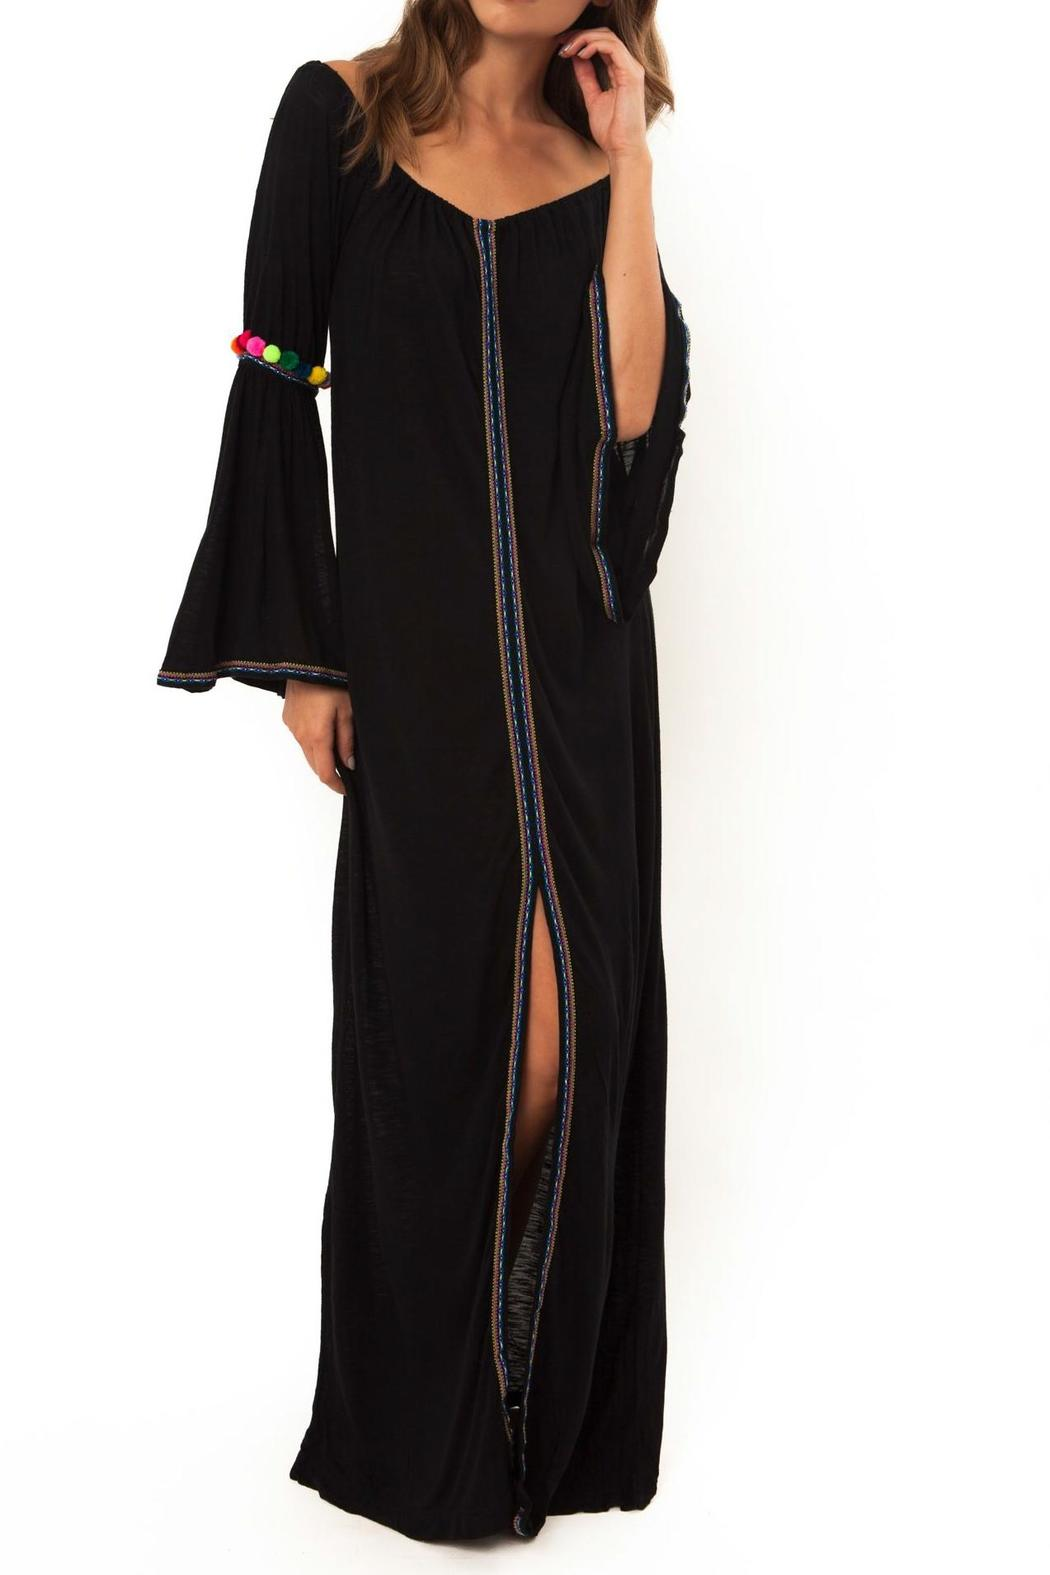 7969579914eb Pitusa Gypsy Dress Black from Miami by Neptunes — Shoptiques